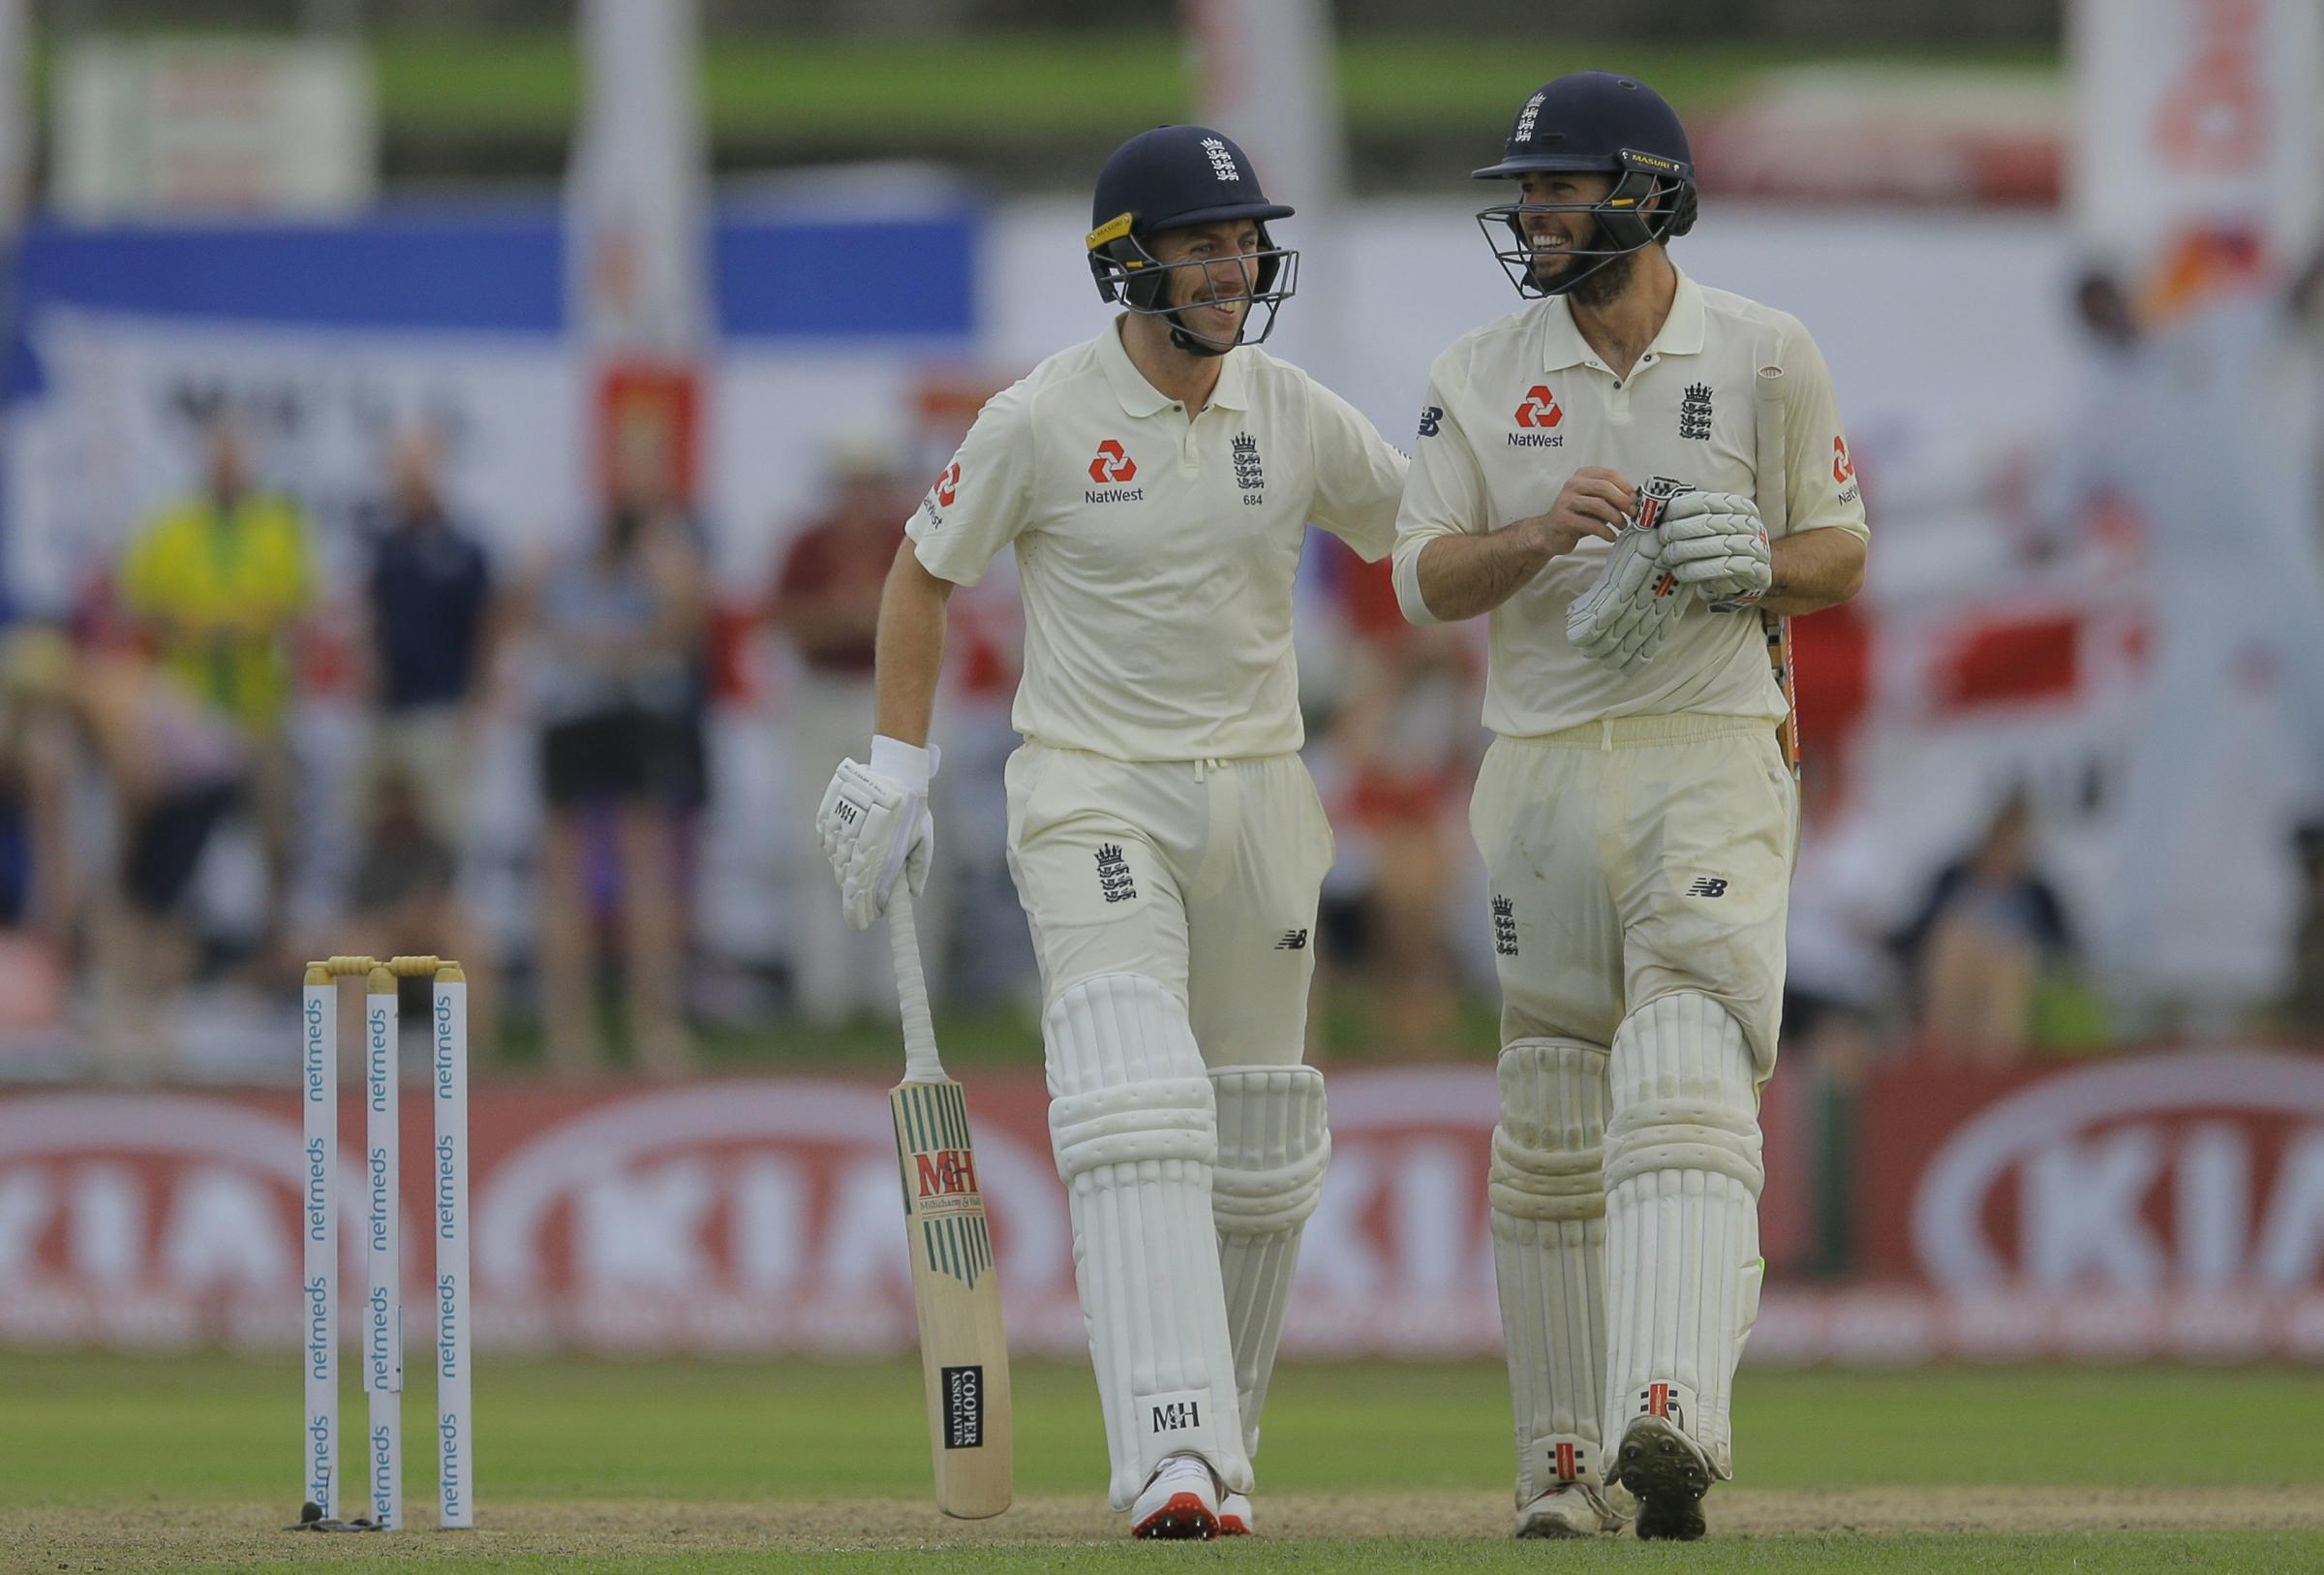 WELL PLAYED: Jack Leach (left) and Ben Foakes saw England through to the close on day one in Galle. Pic: PA